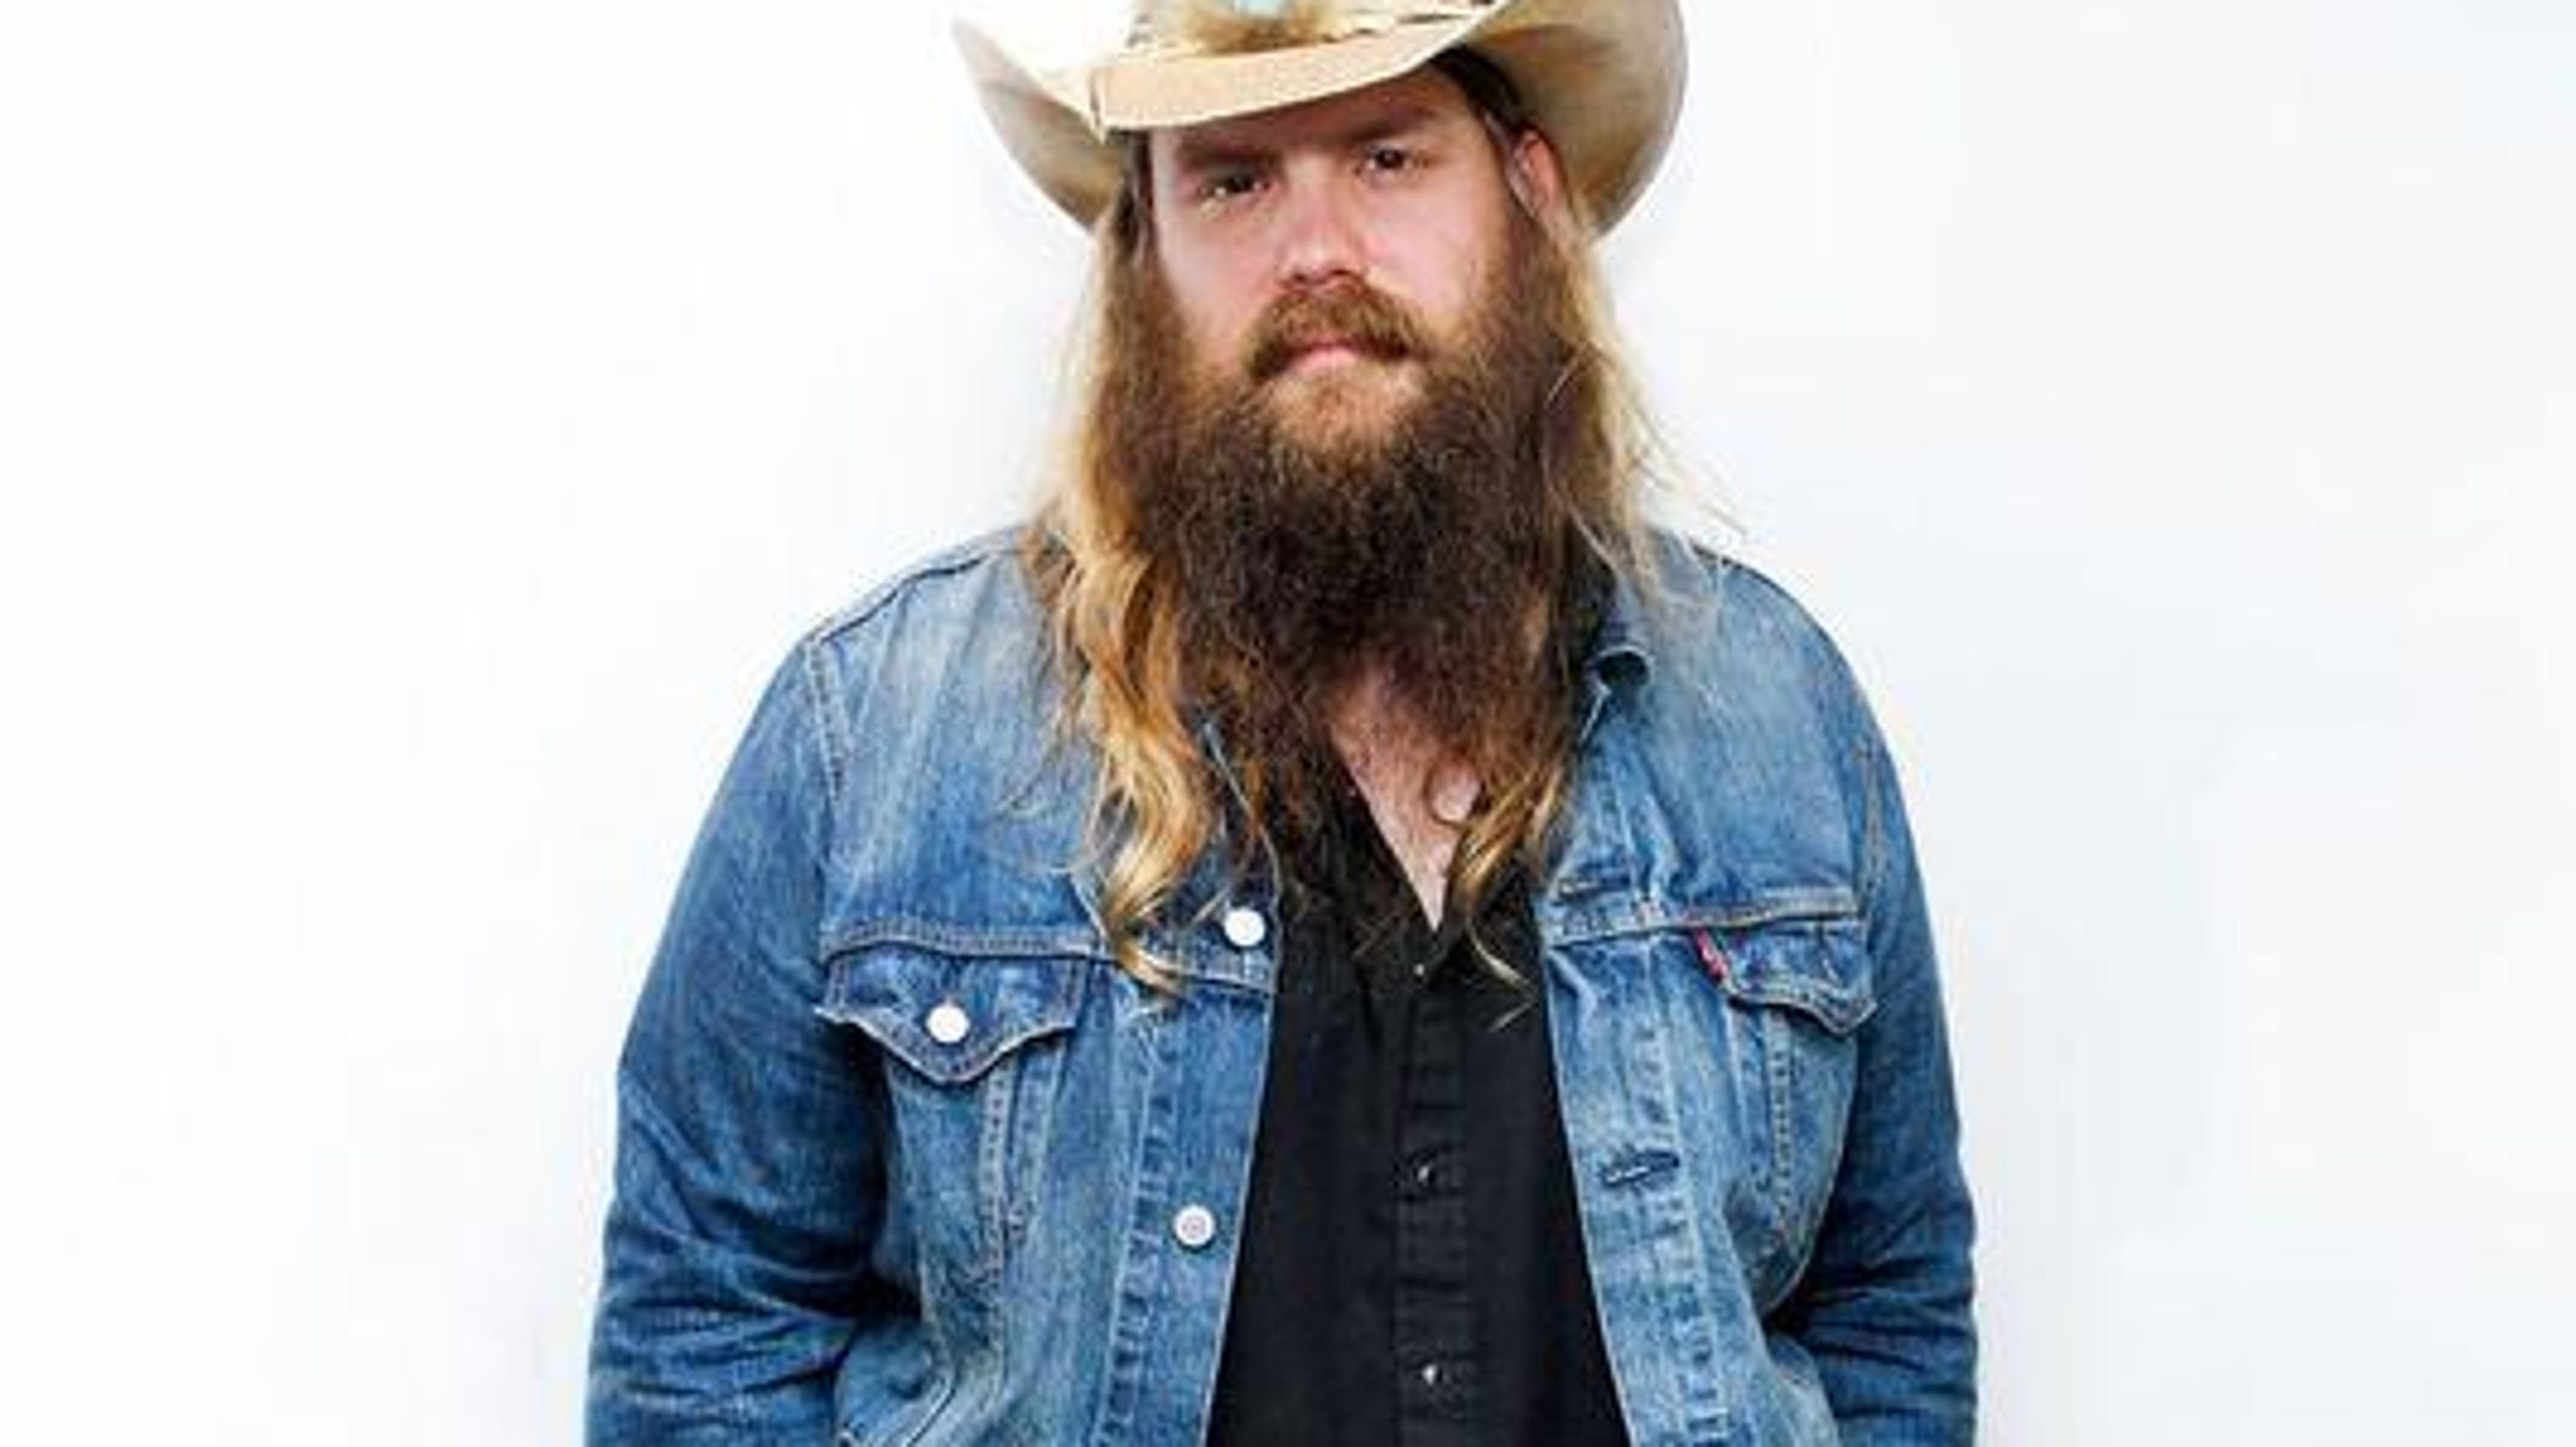 Forecastle Festival 2018 lineup stars Chris Stapleton, Arcade Fire